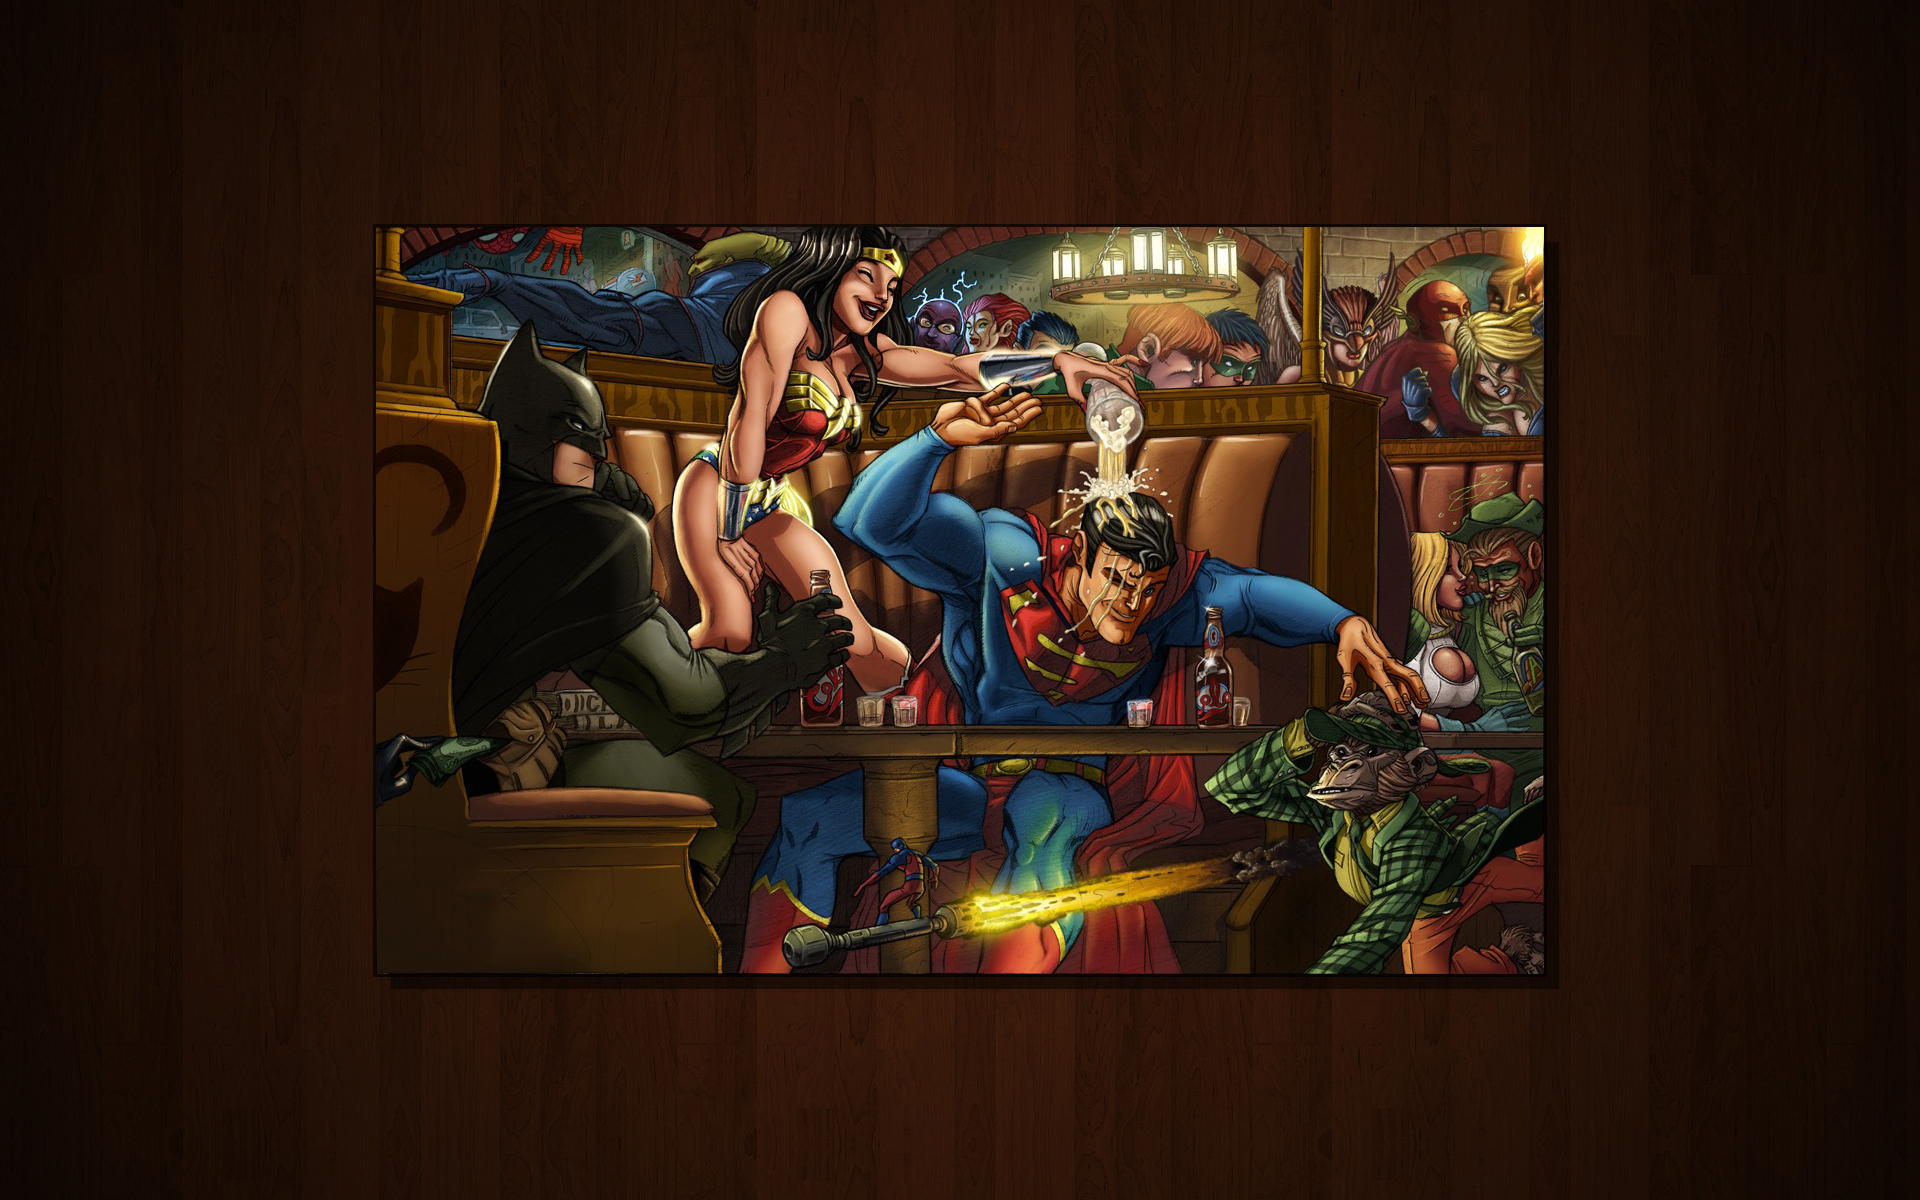 Drunken DC Comics Wallpapers Drunken DC Comics Myspace Backgrounds 1920x1200